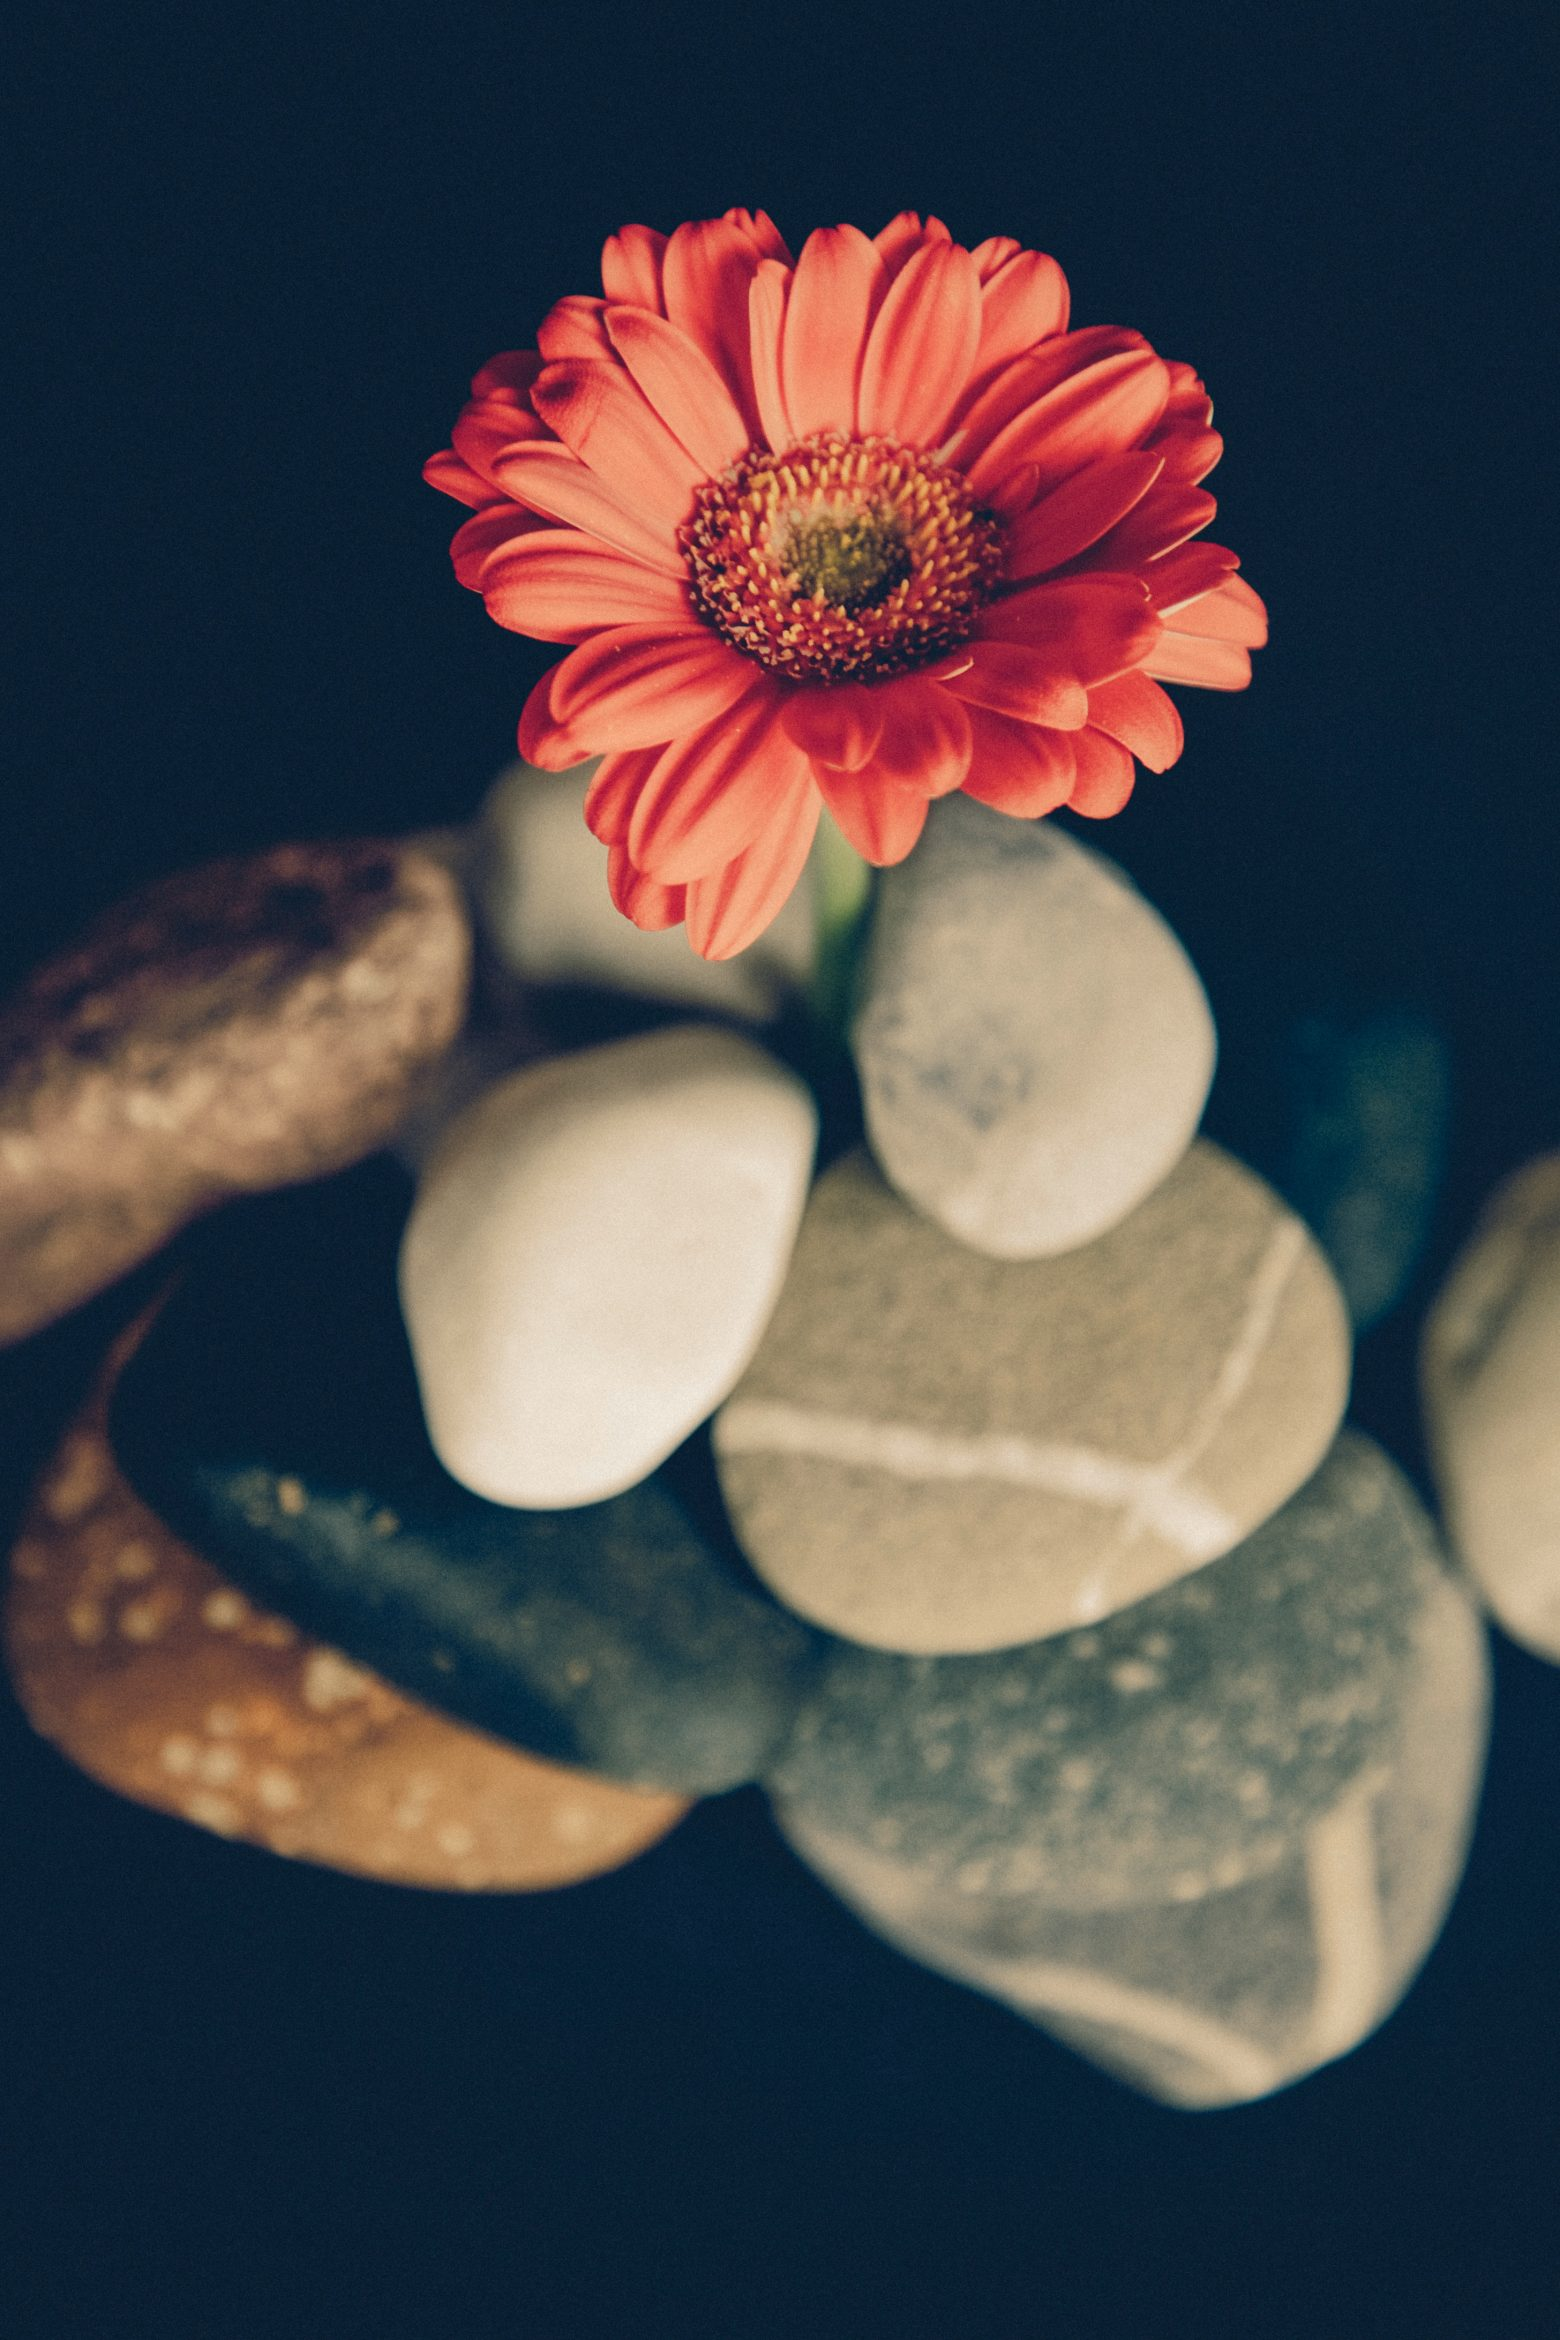 Flower in the stones